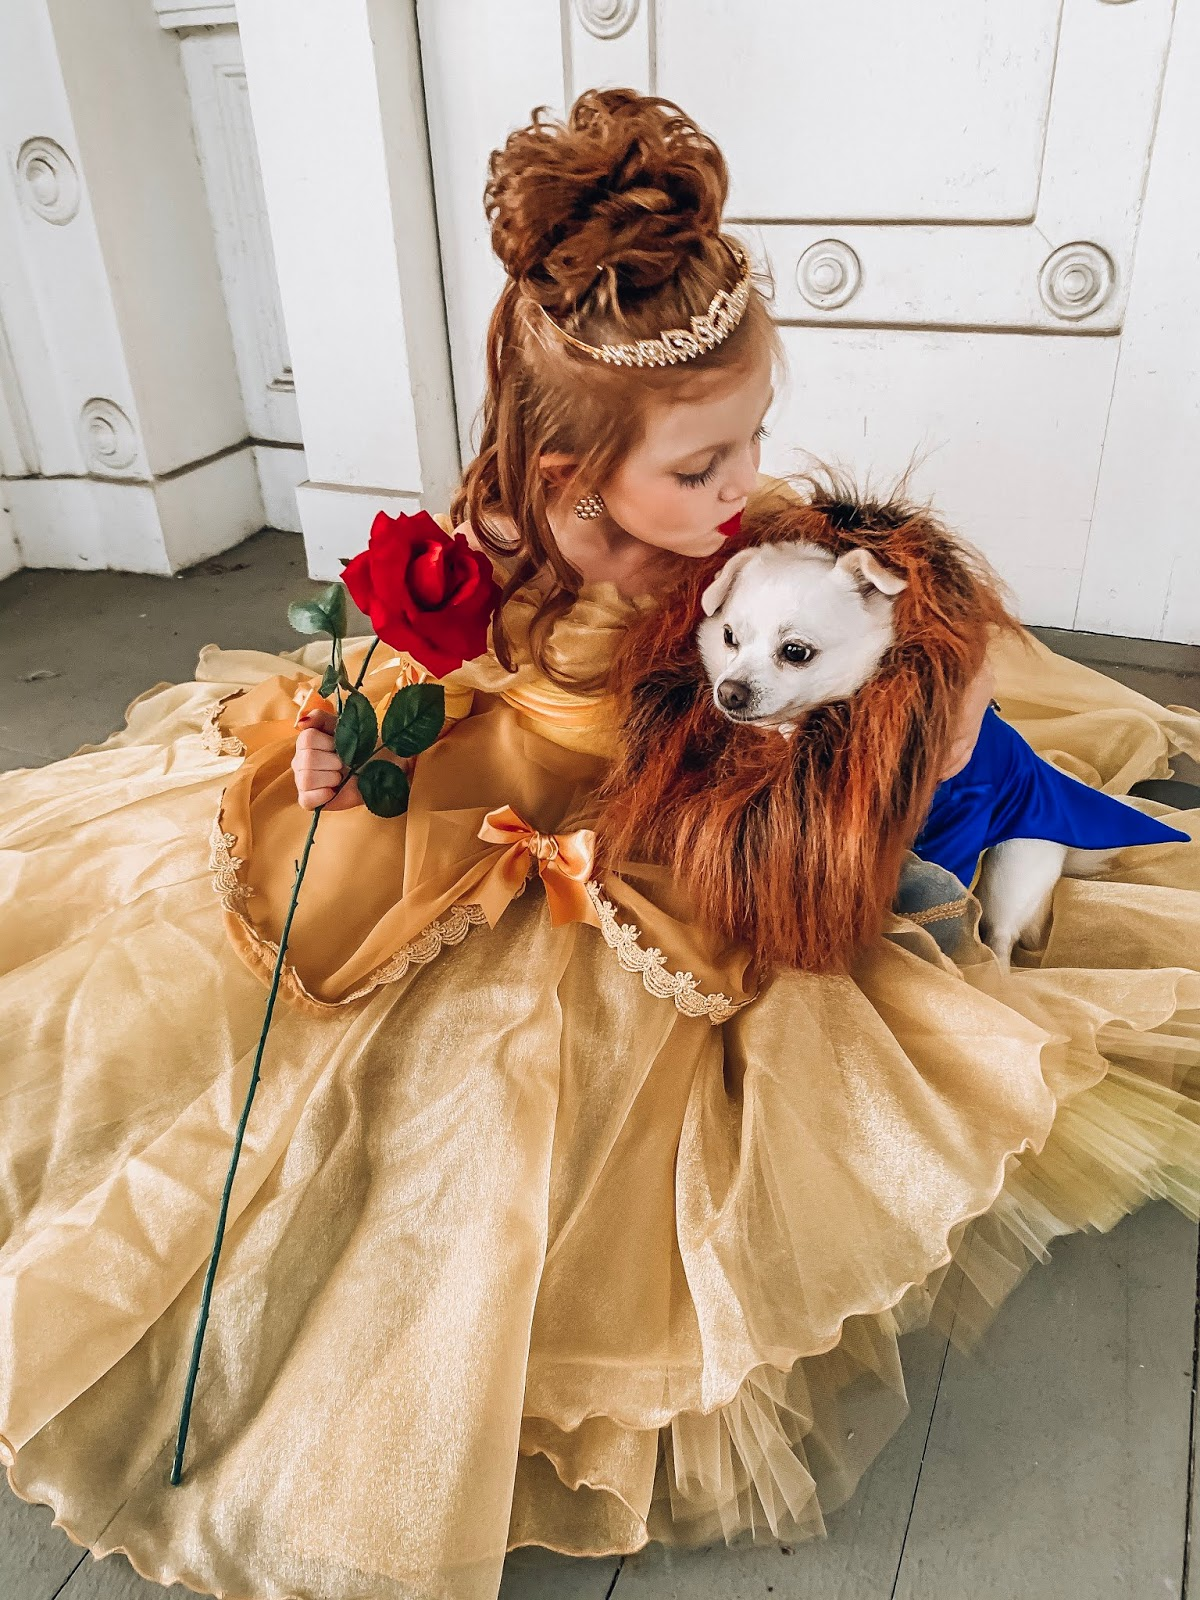 Halloween 2019: A Beauty & The Beast Halloween - Something Delightful Blog #familycostumeideas #beautyandthebeast #halloween #costumeideas